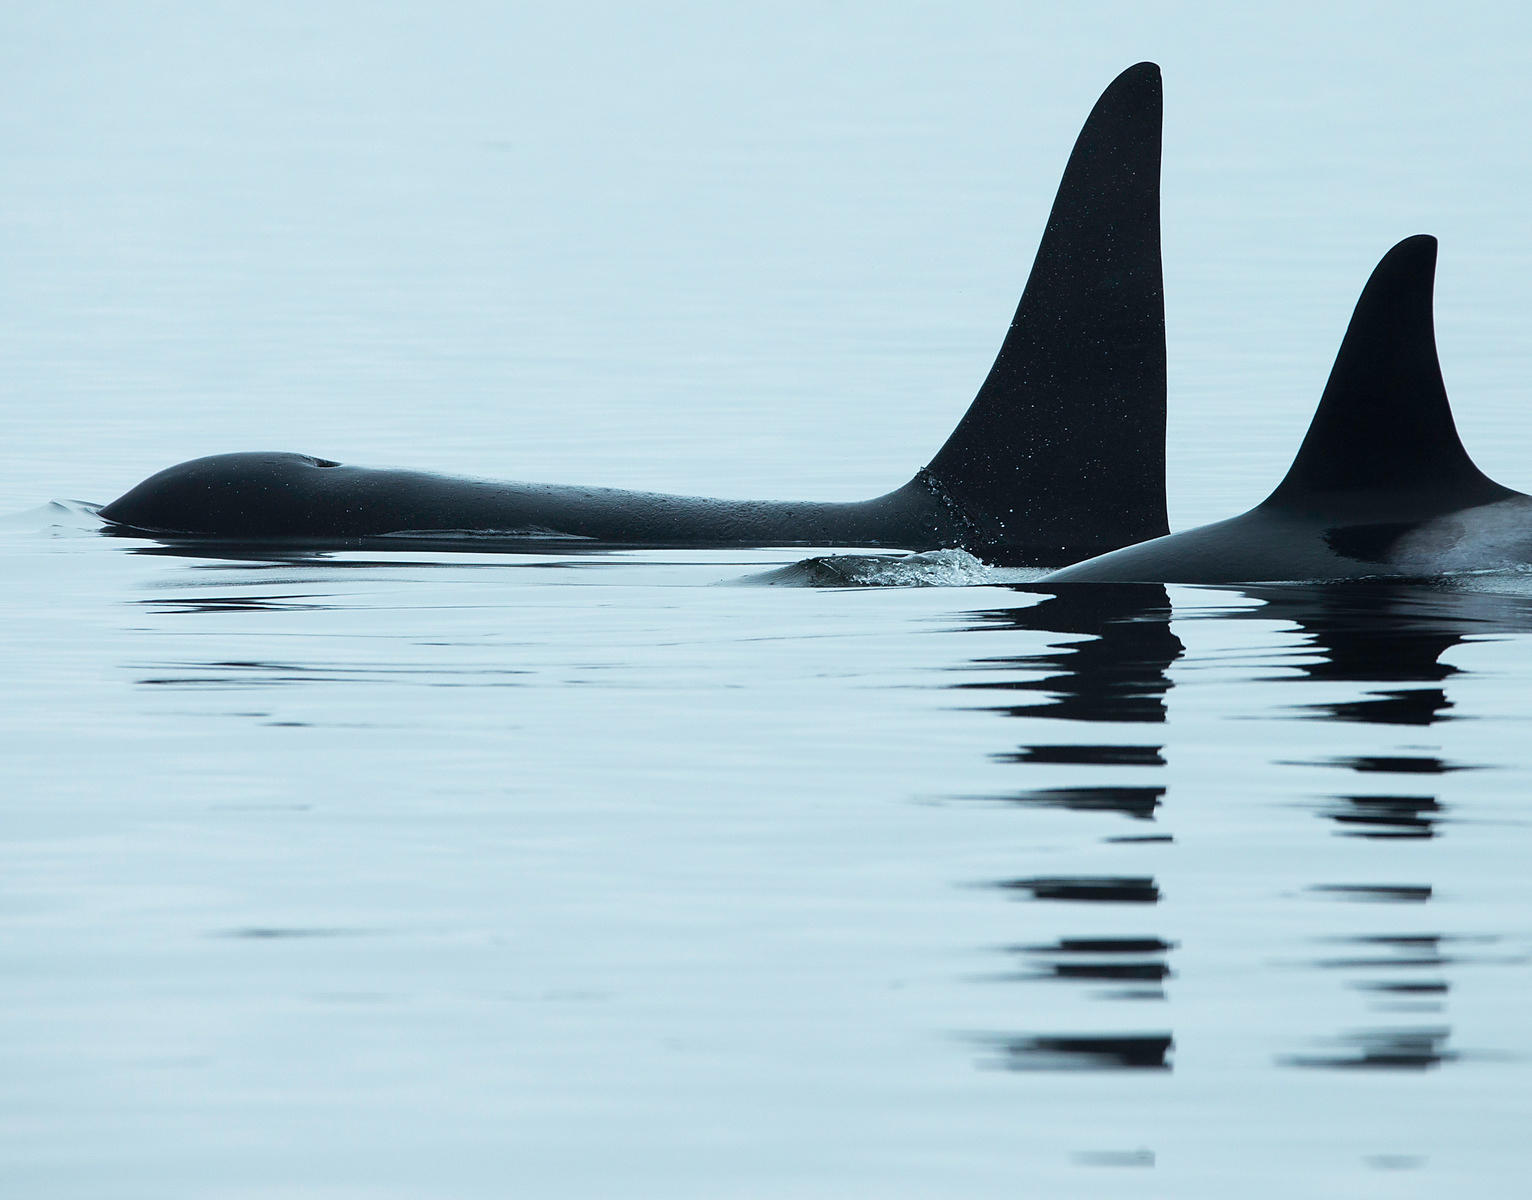 Orca in repose in the calm waters of the Johnstone Strait, off British Columbia in the famed Blackfish Sound, home to several...